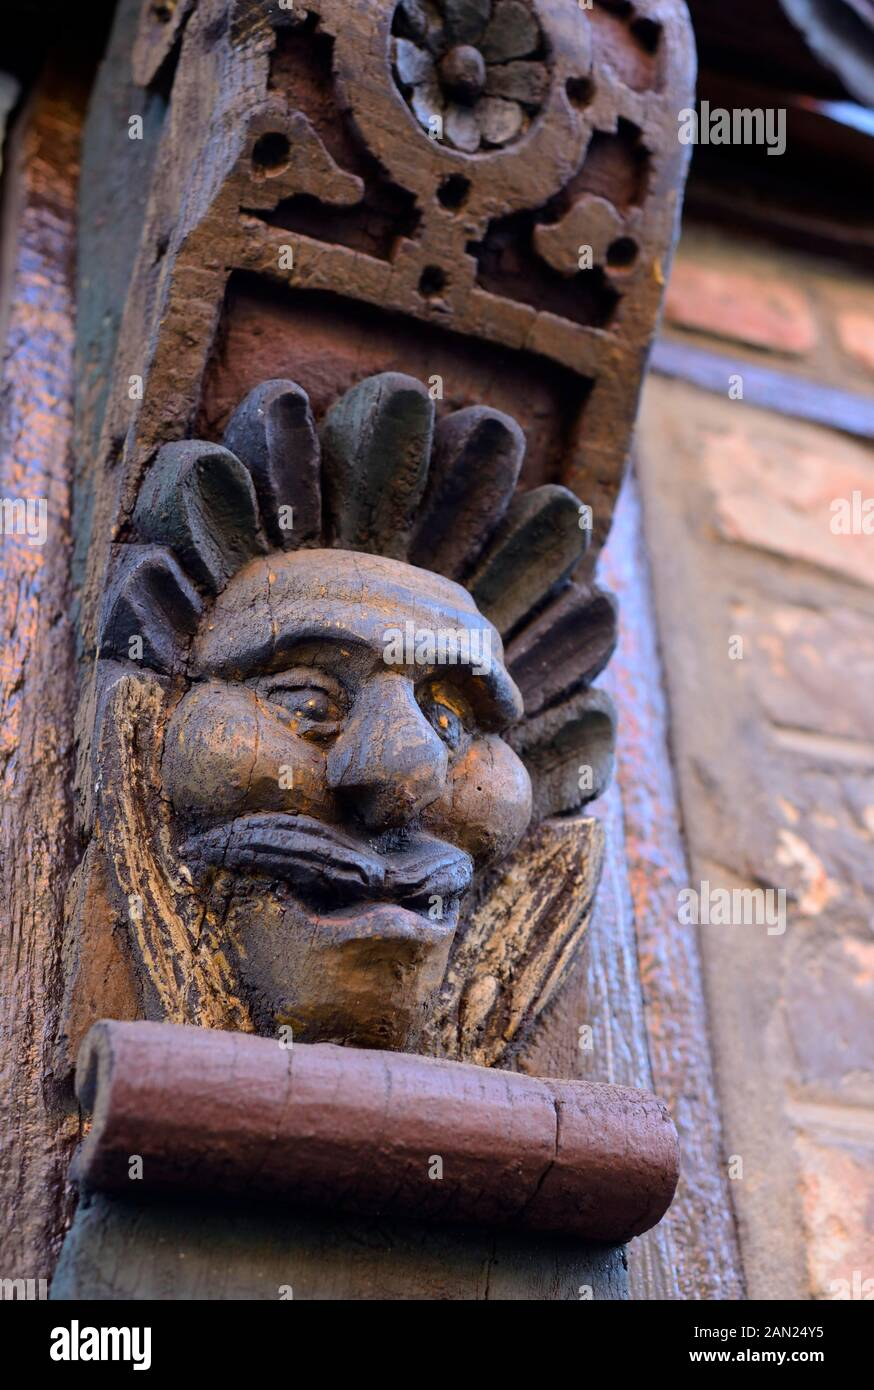 Carved face on wooden beams from Hans Raffns house from the Middle Ages, angel house in Ystad, Scania, Sweden Stock Photo